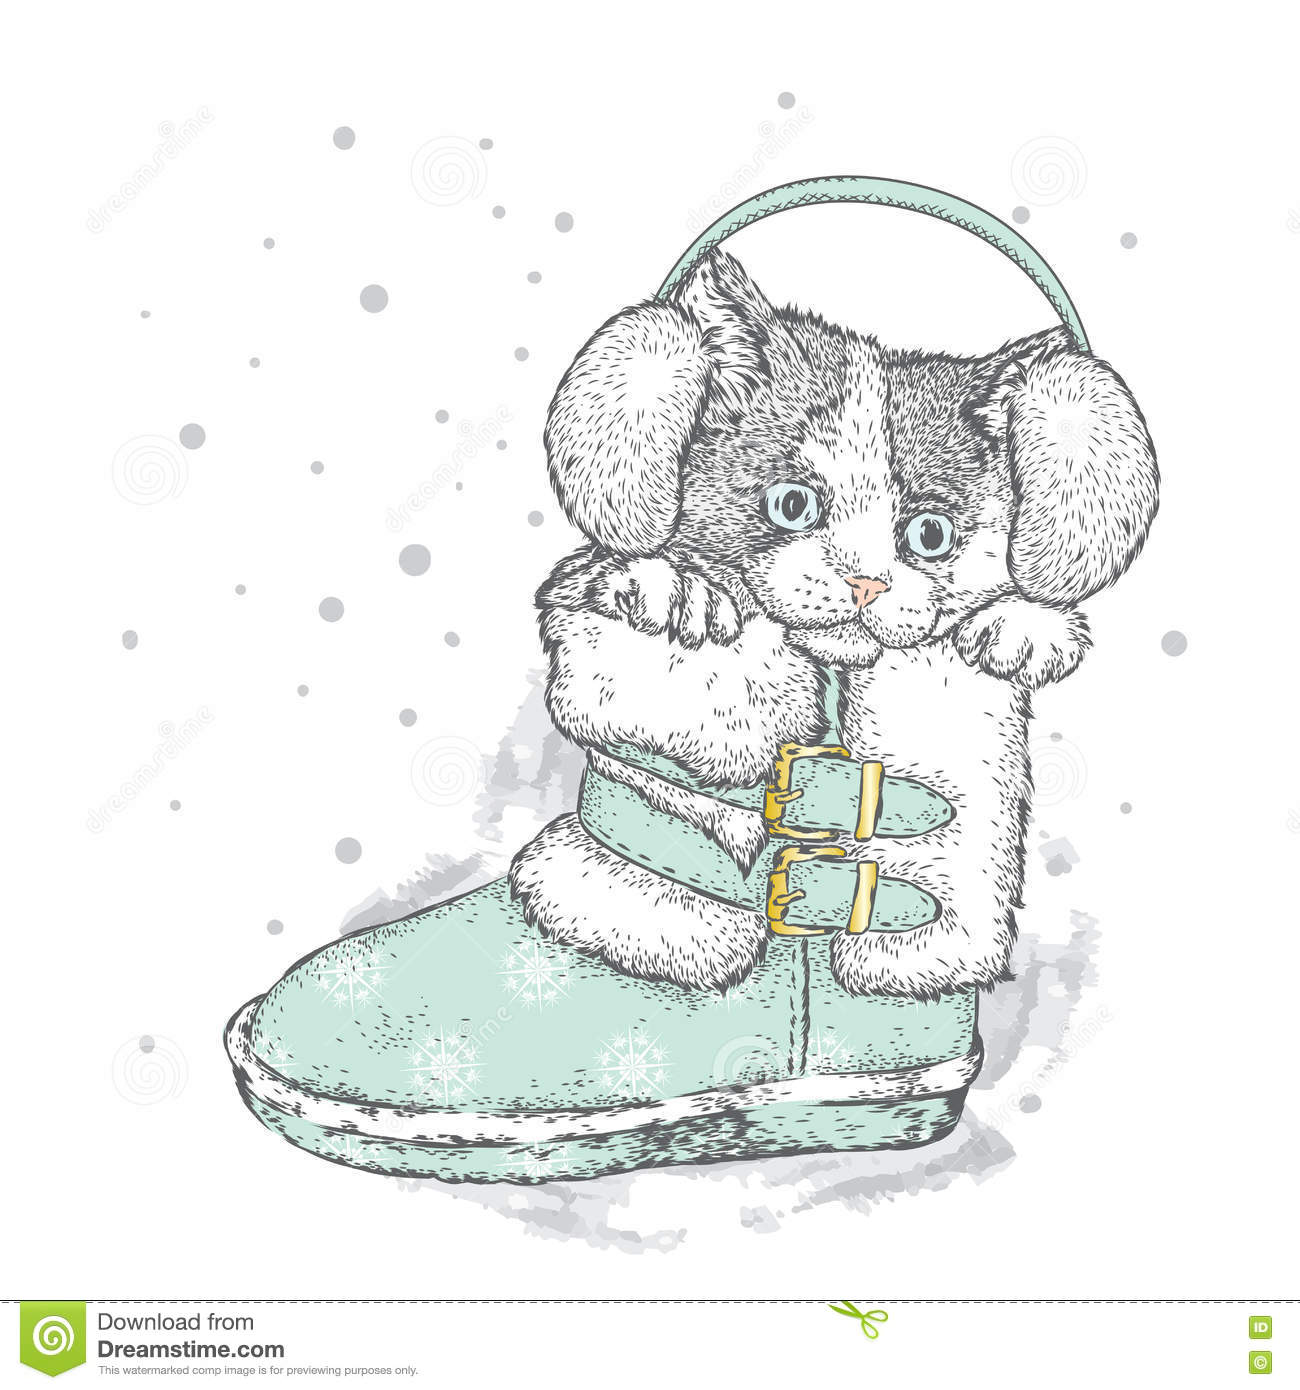 Christmas Boots Drawing.Cute Kitten In Winter Boots Christmas And New Year Stock